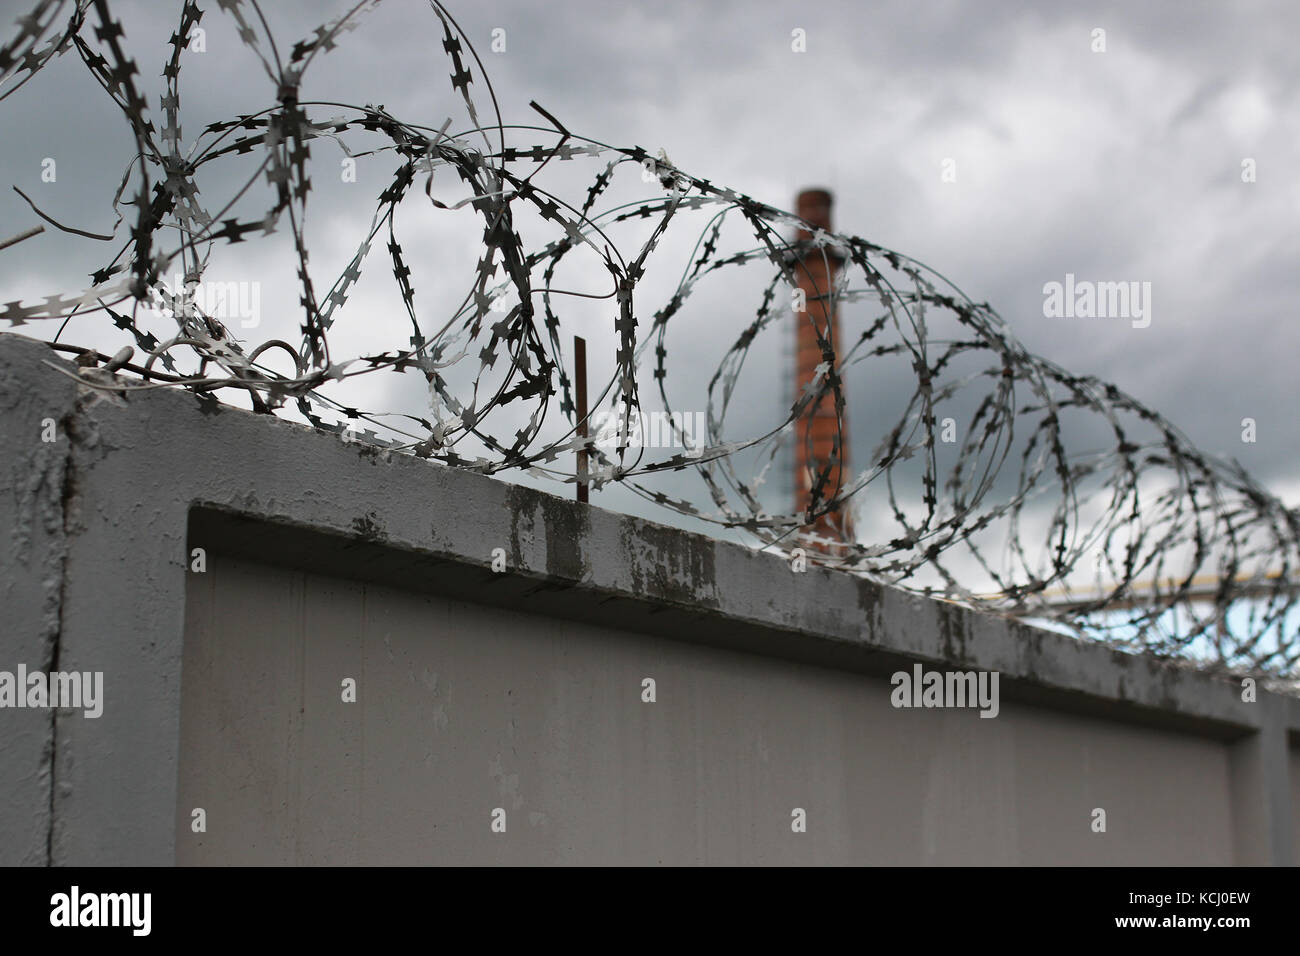 Security system using wire fences  - Stock Image